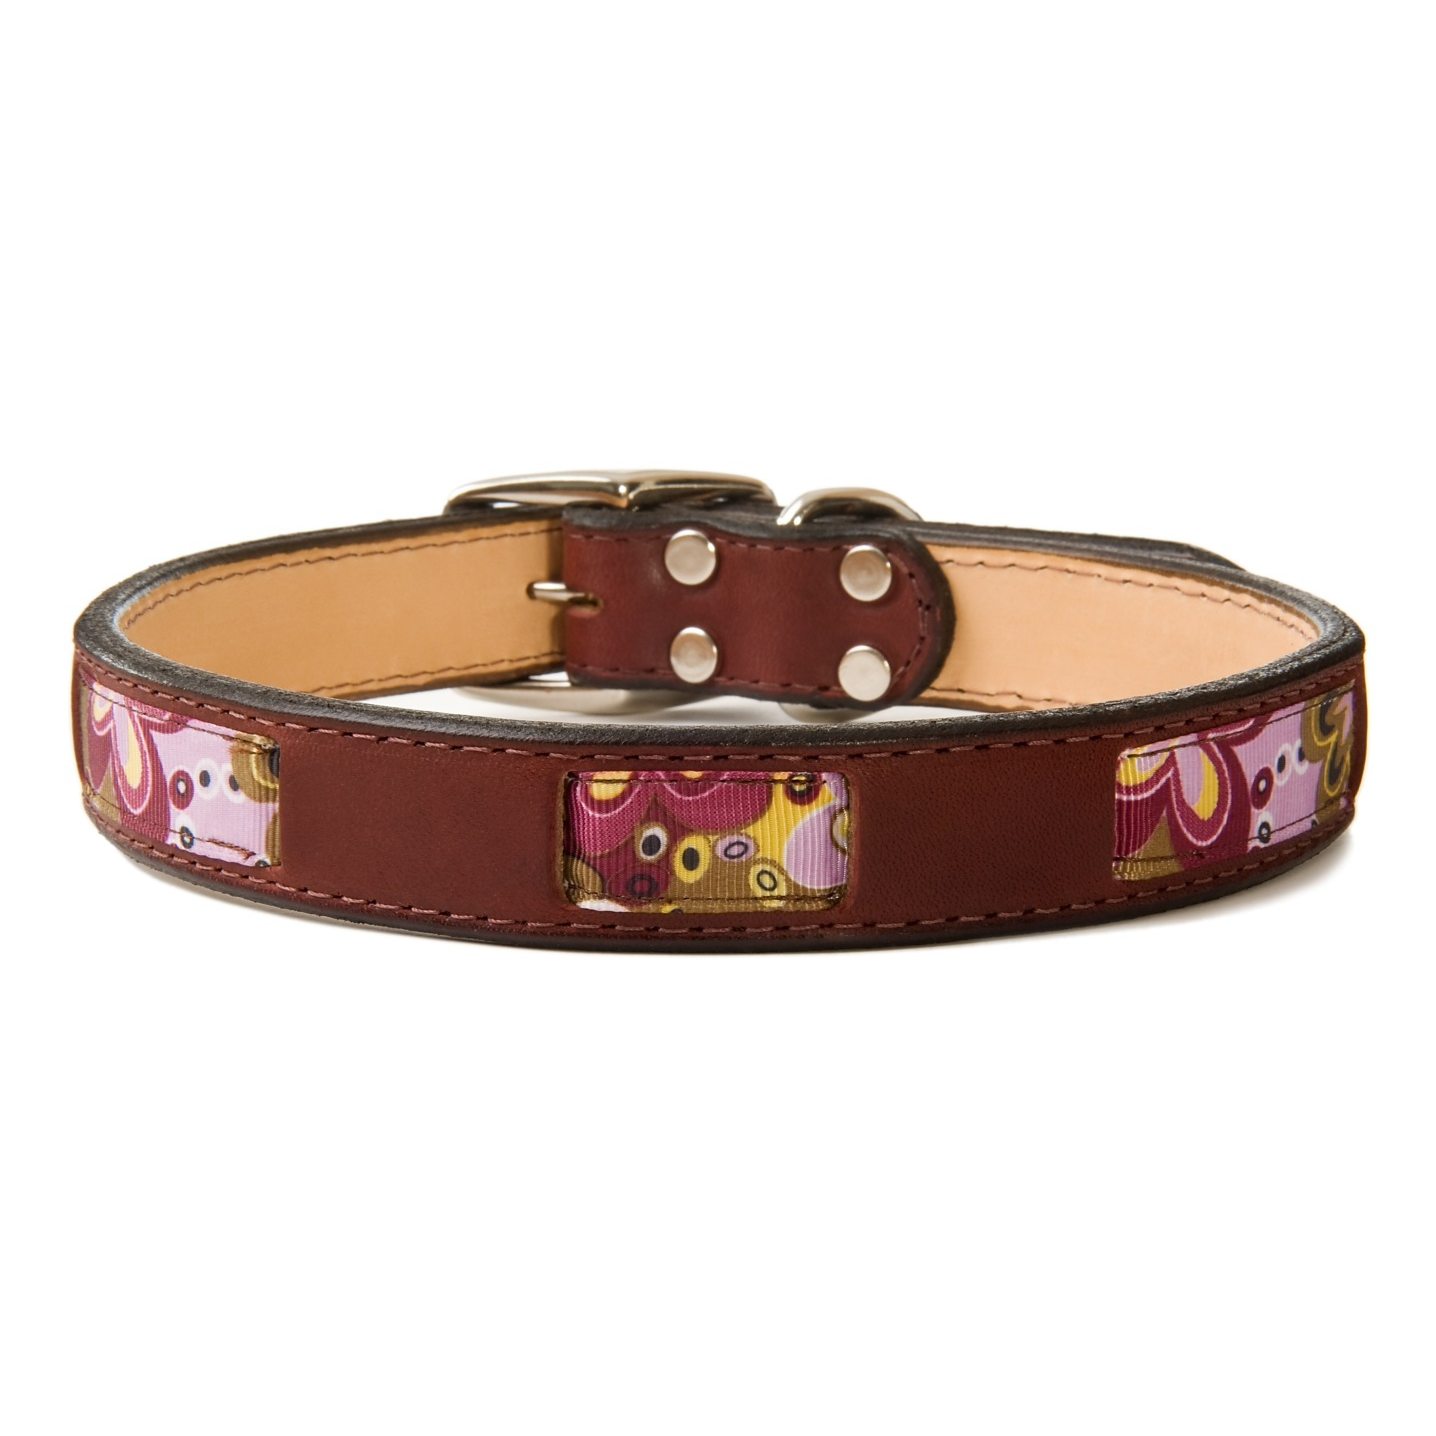 Berry Hippy Chic Leather Collar | Dogs and the City